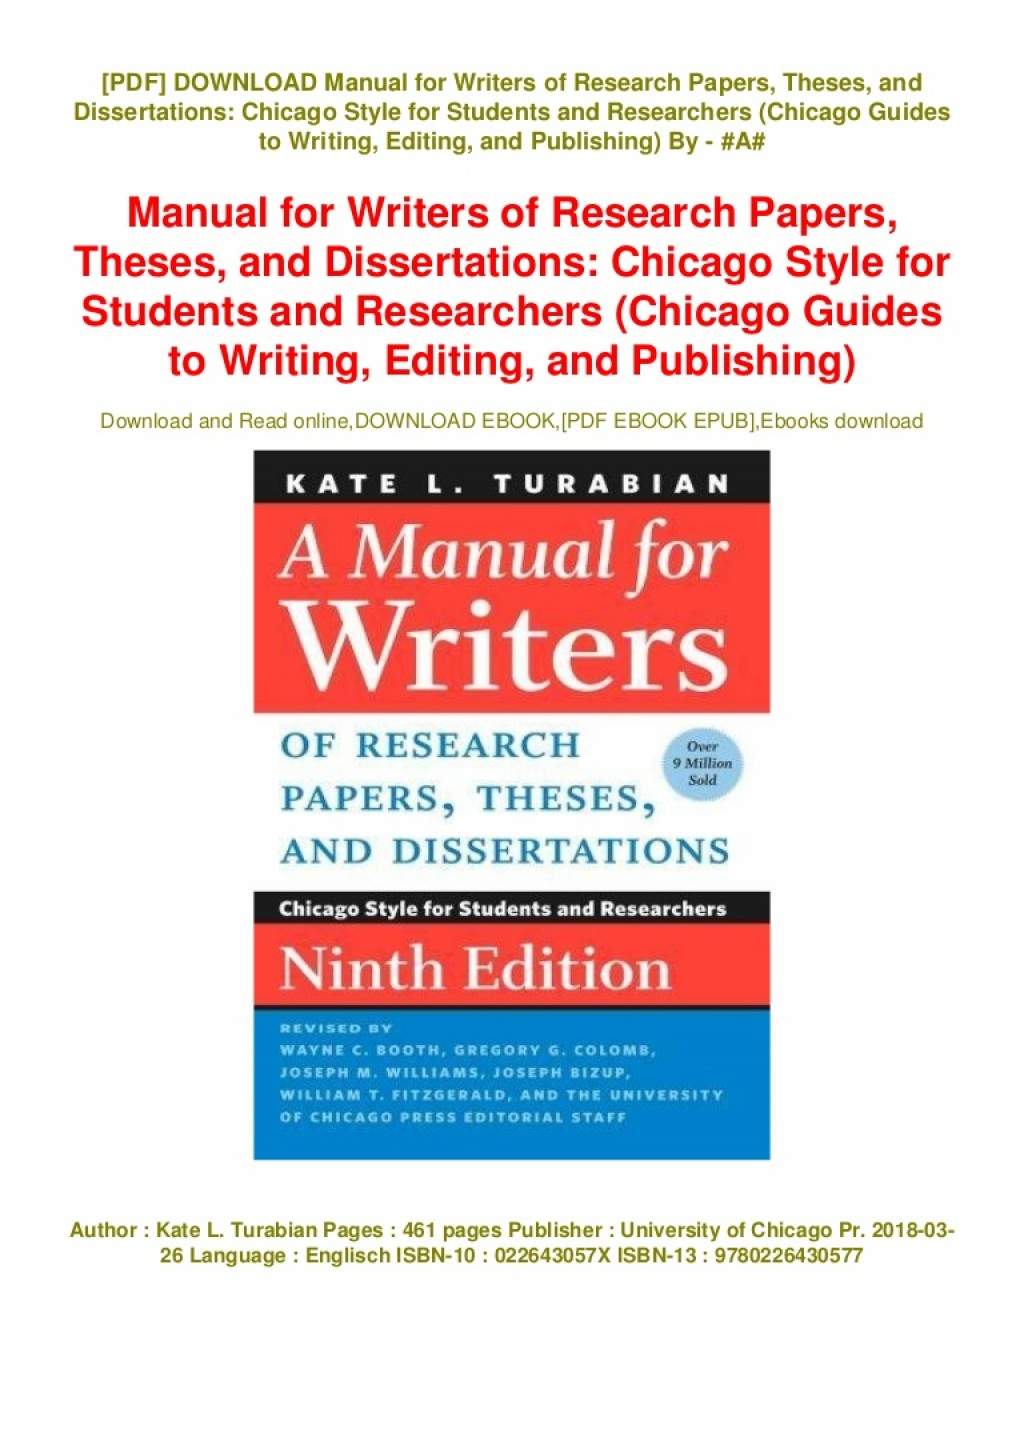 007 Download Manual For Writers Of Research Papersses And Dissertations Chicago Style Students Thumbnail Paper Wonderful A Papers Theses 9th Edition Pdf Large